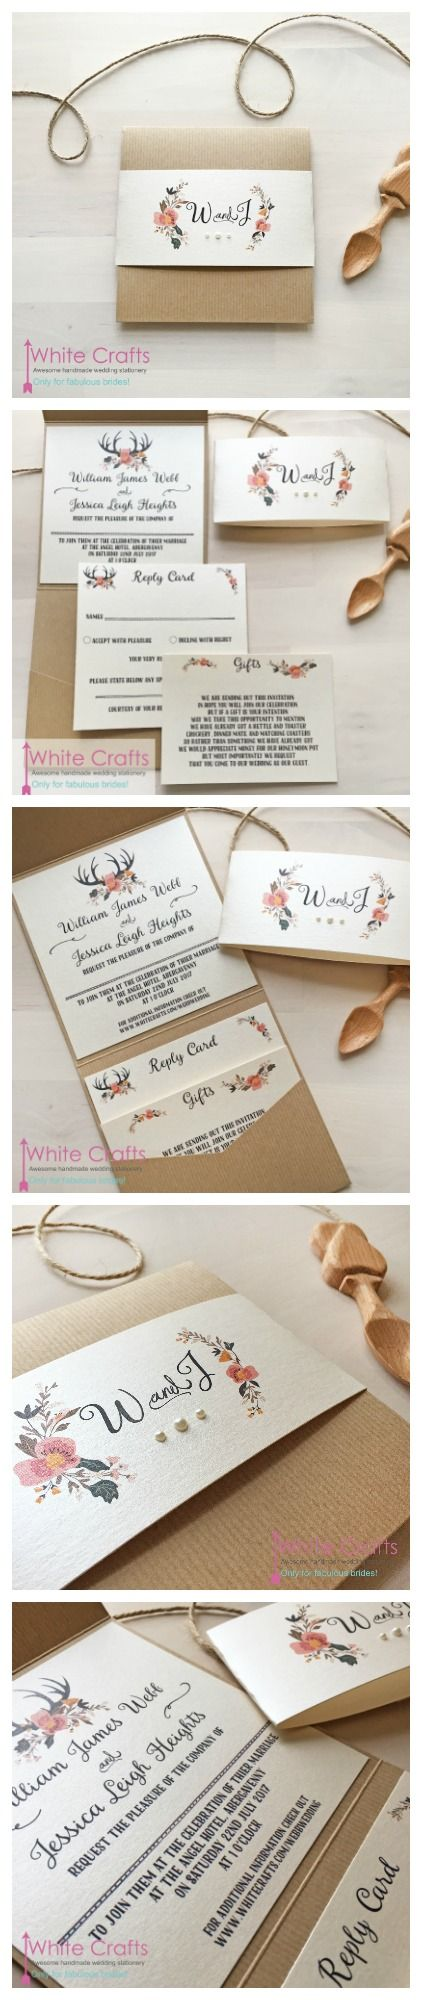 Floral antler pocket winter rustic country natural wedding invitations. peach pink coral blush flower wedding invites. www.whitecrafts.com #antlerwedding #winterwedding #floralweddinginvites #antlerweddinginvitations #winterweddinginvitations #floralantlers #weddinginvitationideas #winterweddinginvitationideas